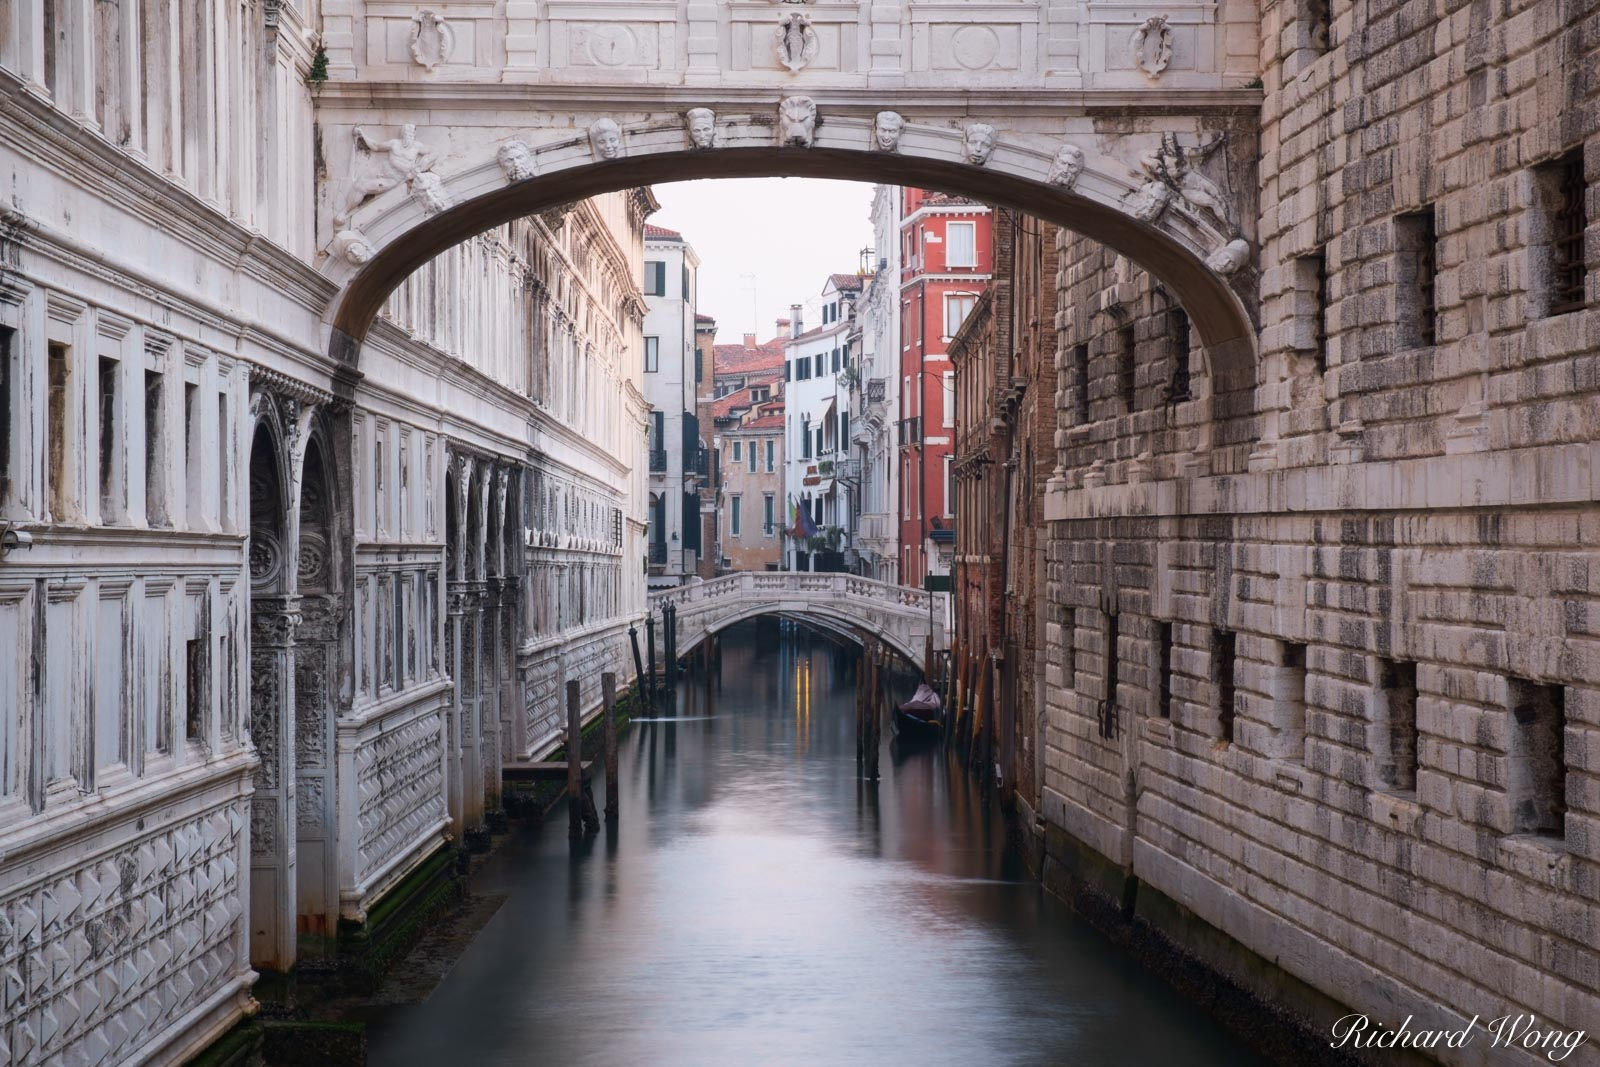 architecture, bridge of sighs, buildings, canal, dogeís palace, europe, historic, historical, italia, italy, morning, new prison, outdoors, outside, palazzo ducale, ponte dei sospiri, prigioni nuove, , photo